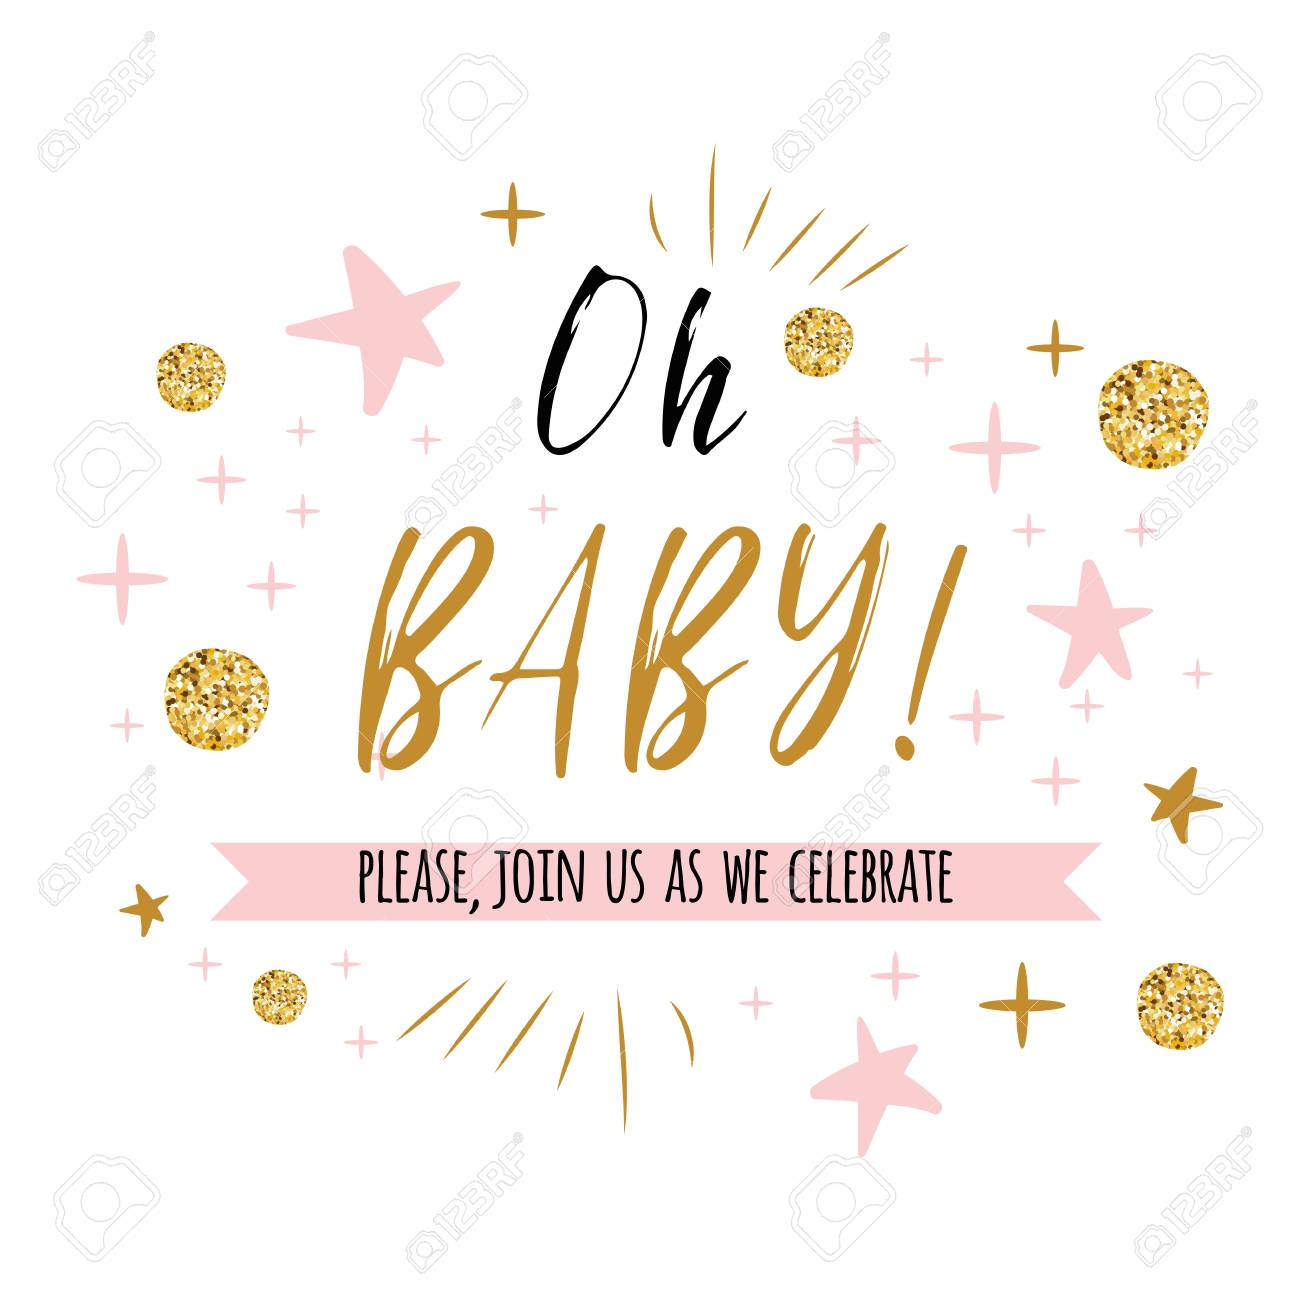 Ggentle Oh Baby Text With Cute Gold Pink Colors For Girl Baby Stock Photo Picture And Royalty Free Image Image 94391370